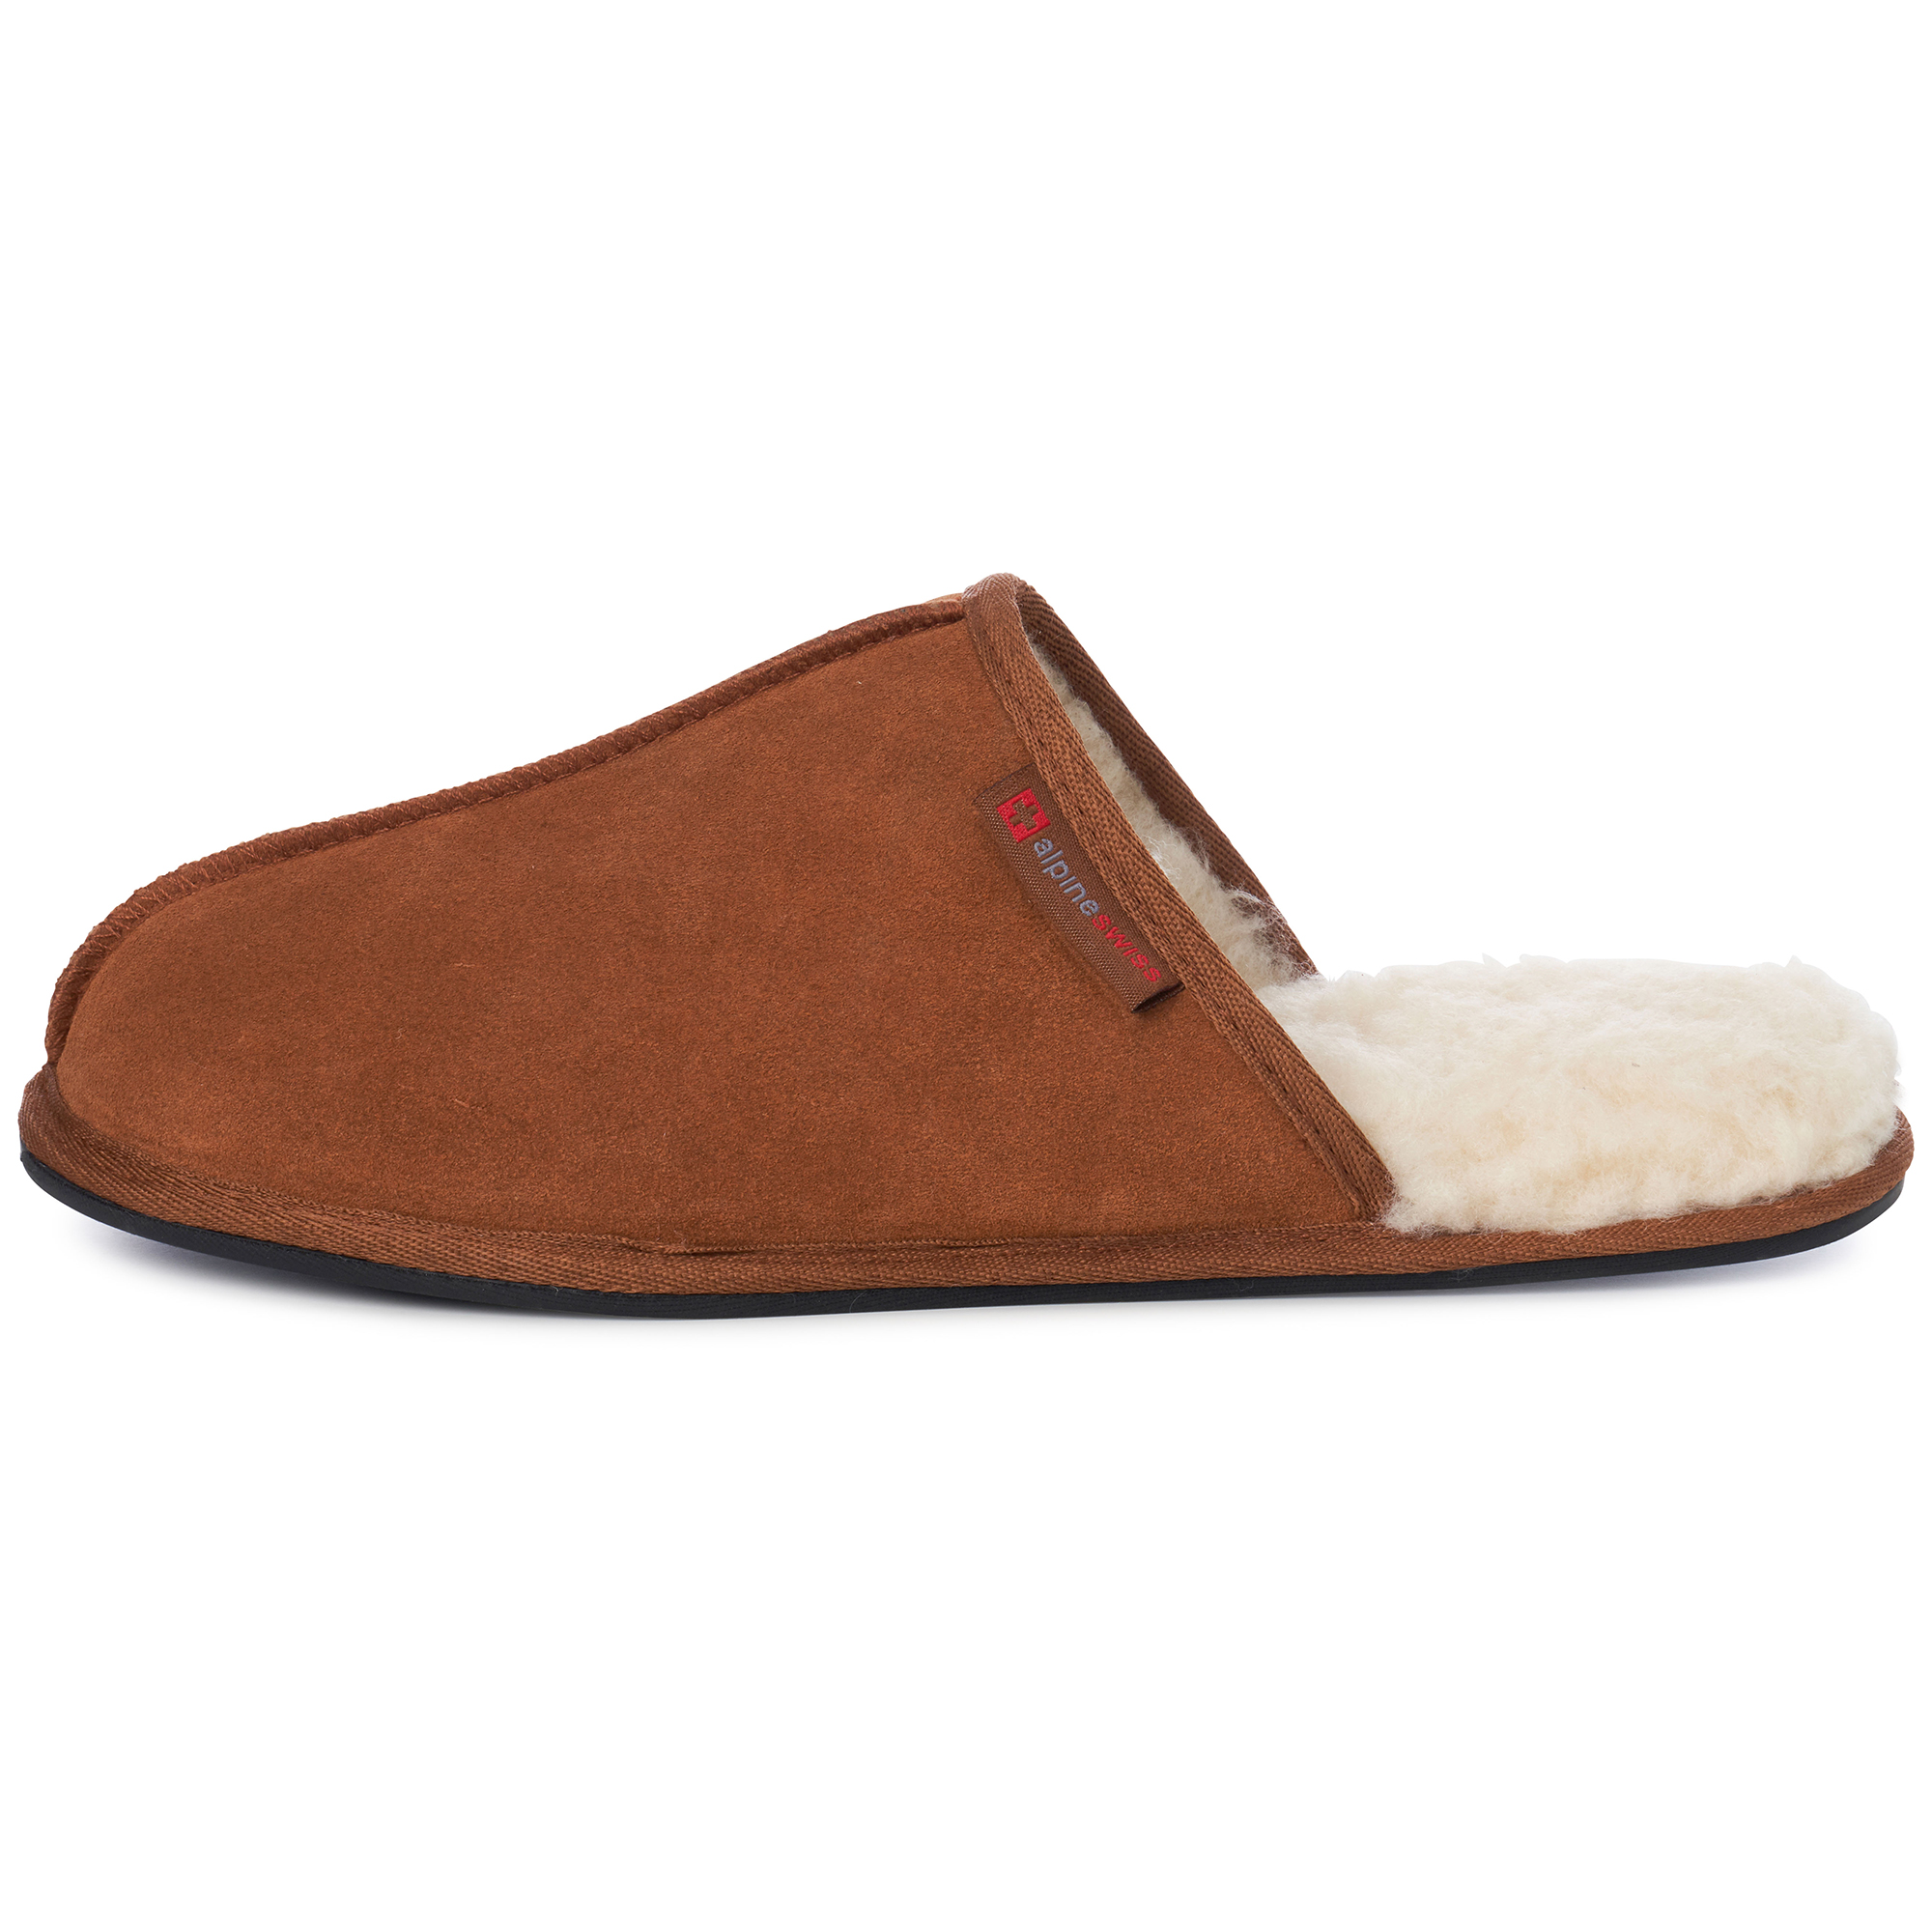 Alpine-Swiss-Mens-Suede-Memory-Foam-Scuff-Slippers-Comfort-Slip-On-House-Shoes thumbnail 19